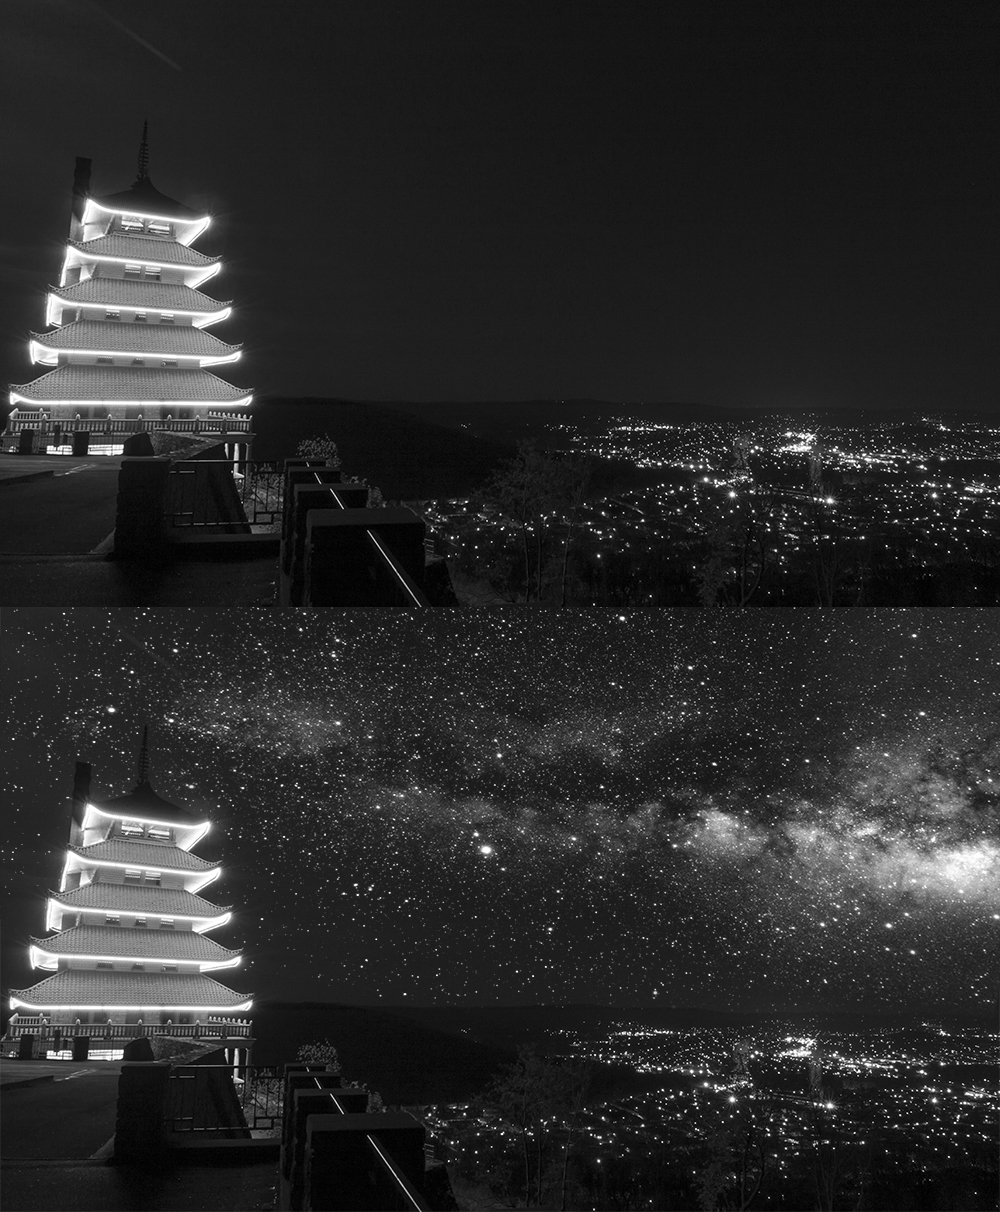 Comparison of Pagoda Starry Night Sky Photoshop Tutorial